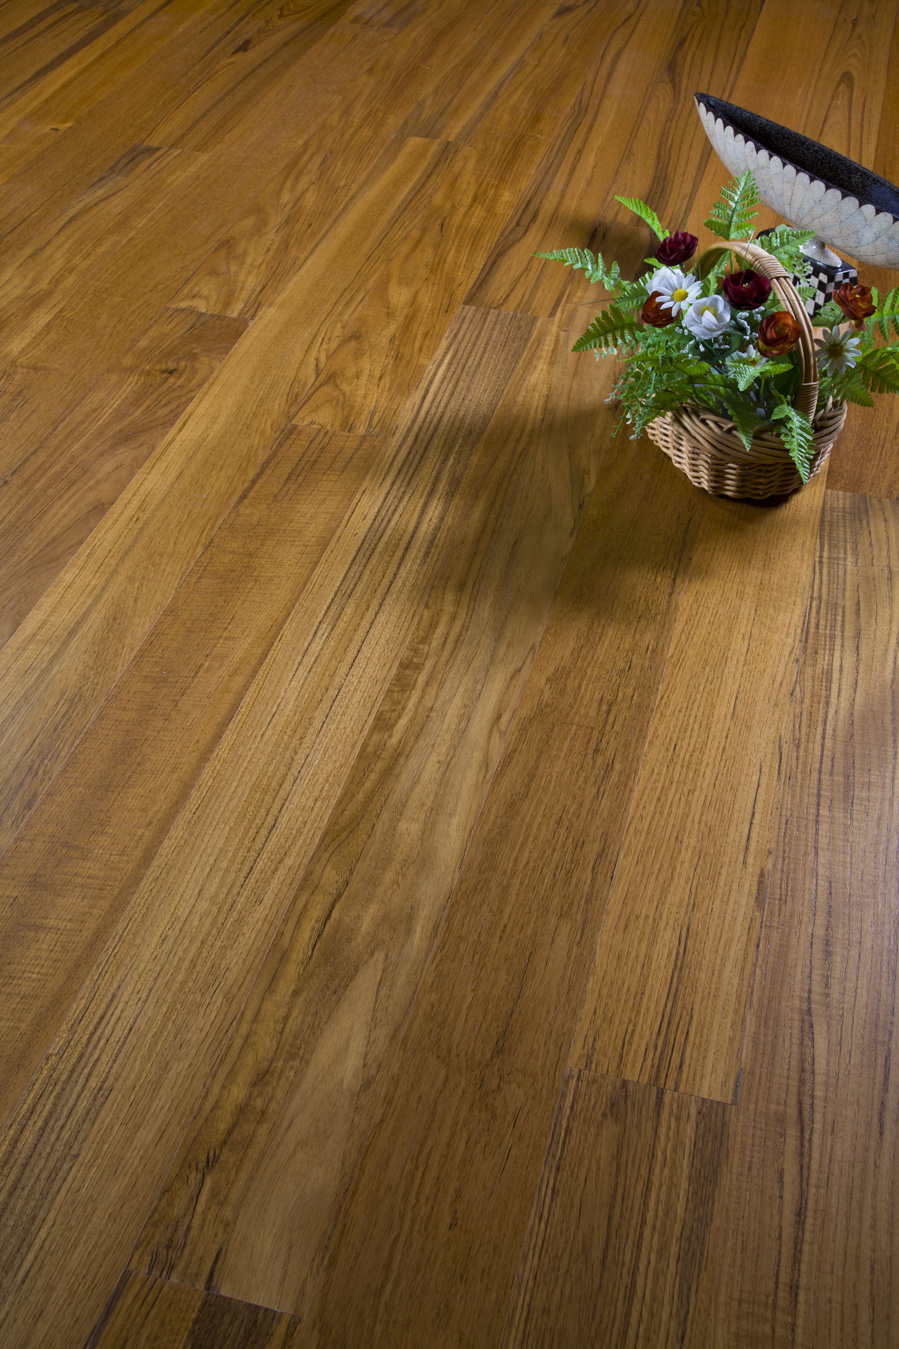 Europlank-144-Natural-Teak-Nature-TE142142.jpg